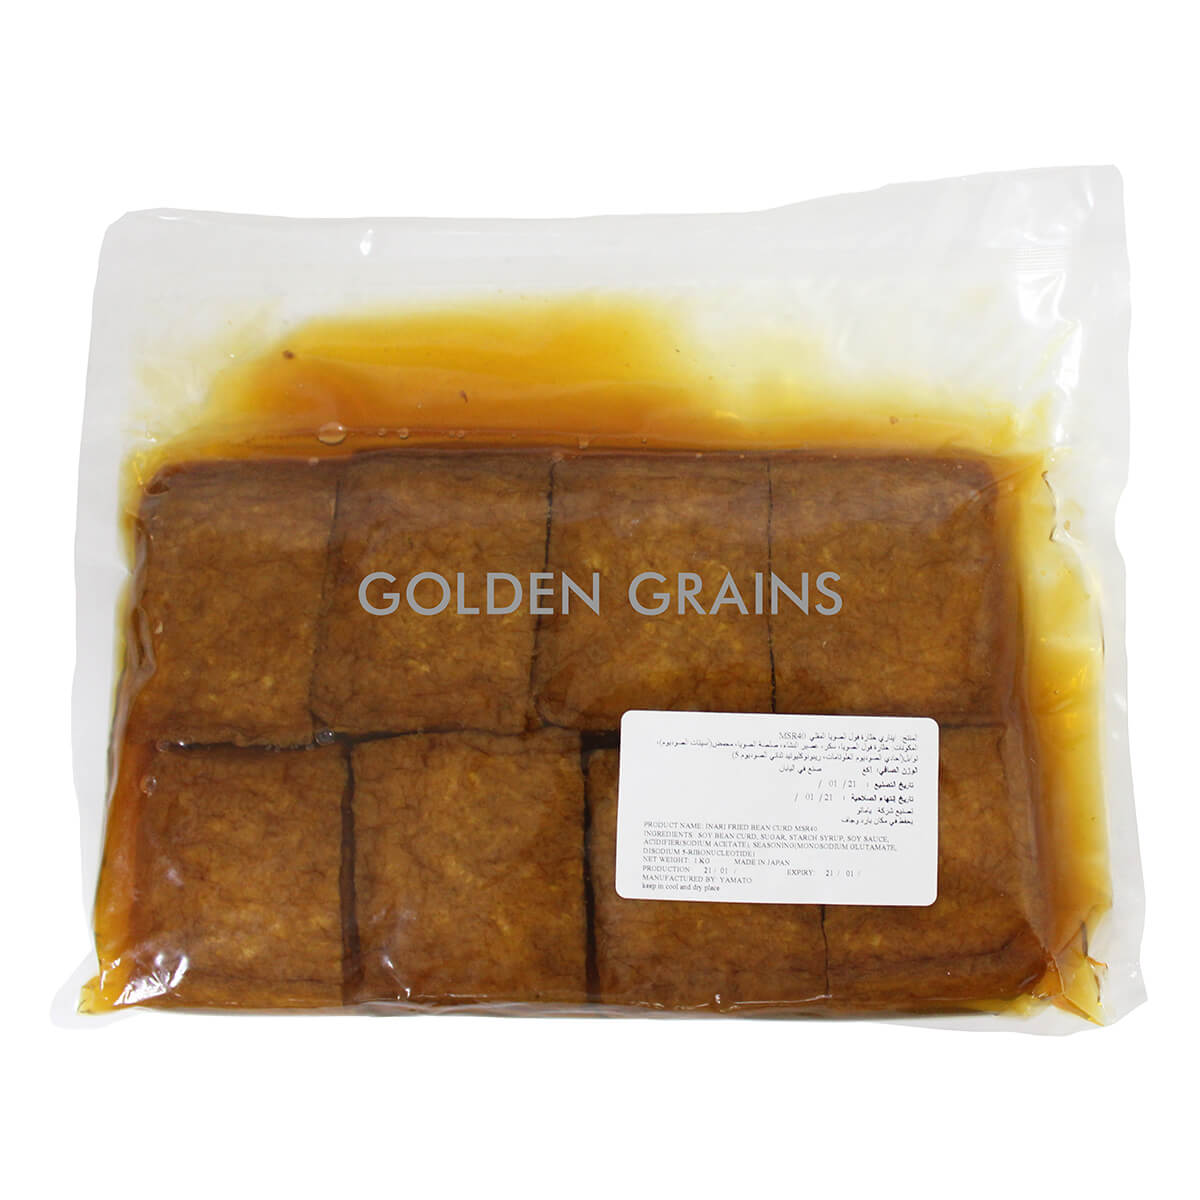 Golden Grains Yamato - Inari Fried - 1KG - Japan - Front.jpg